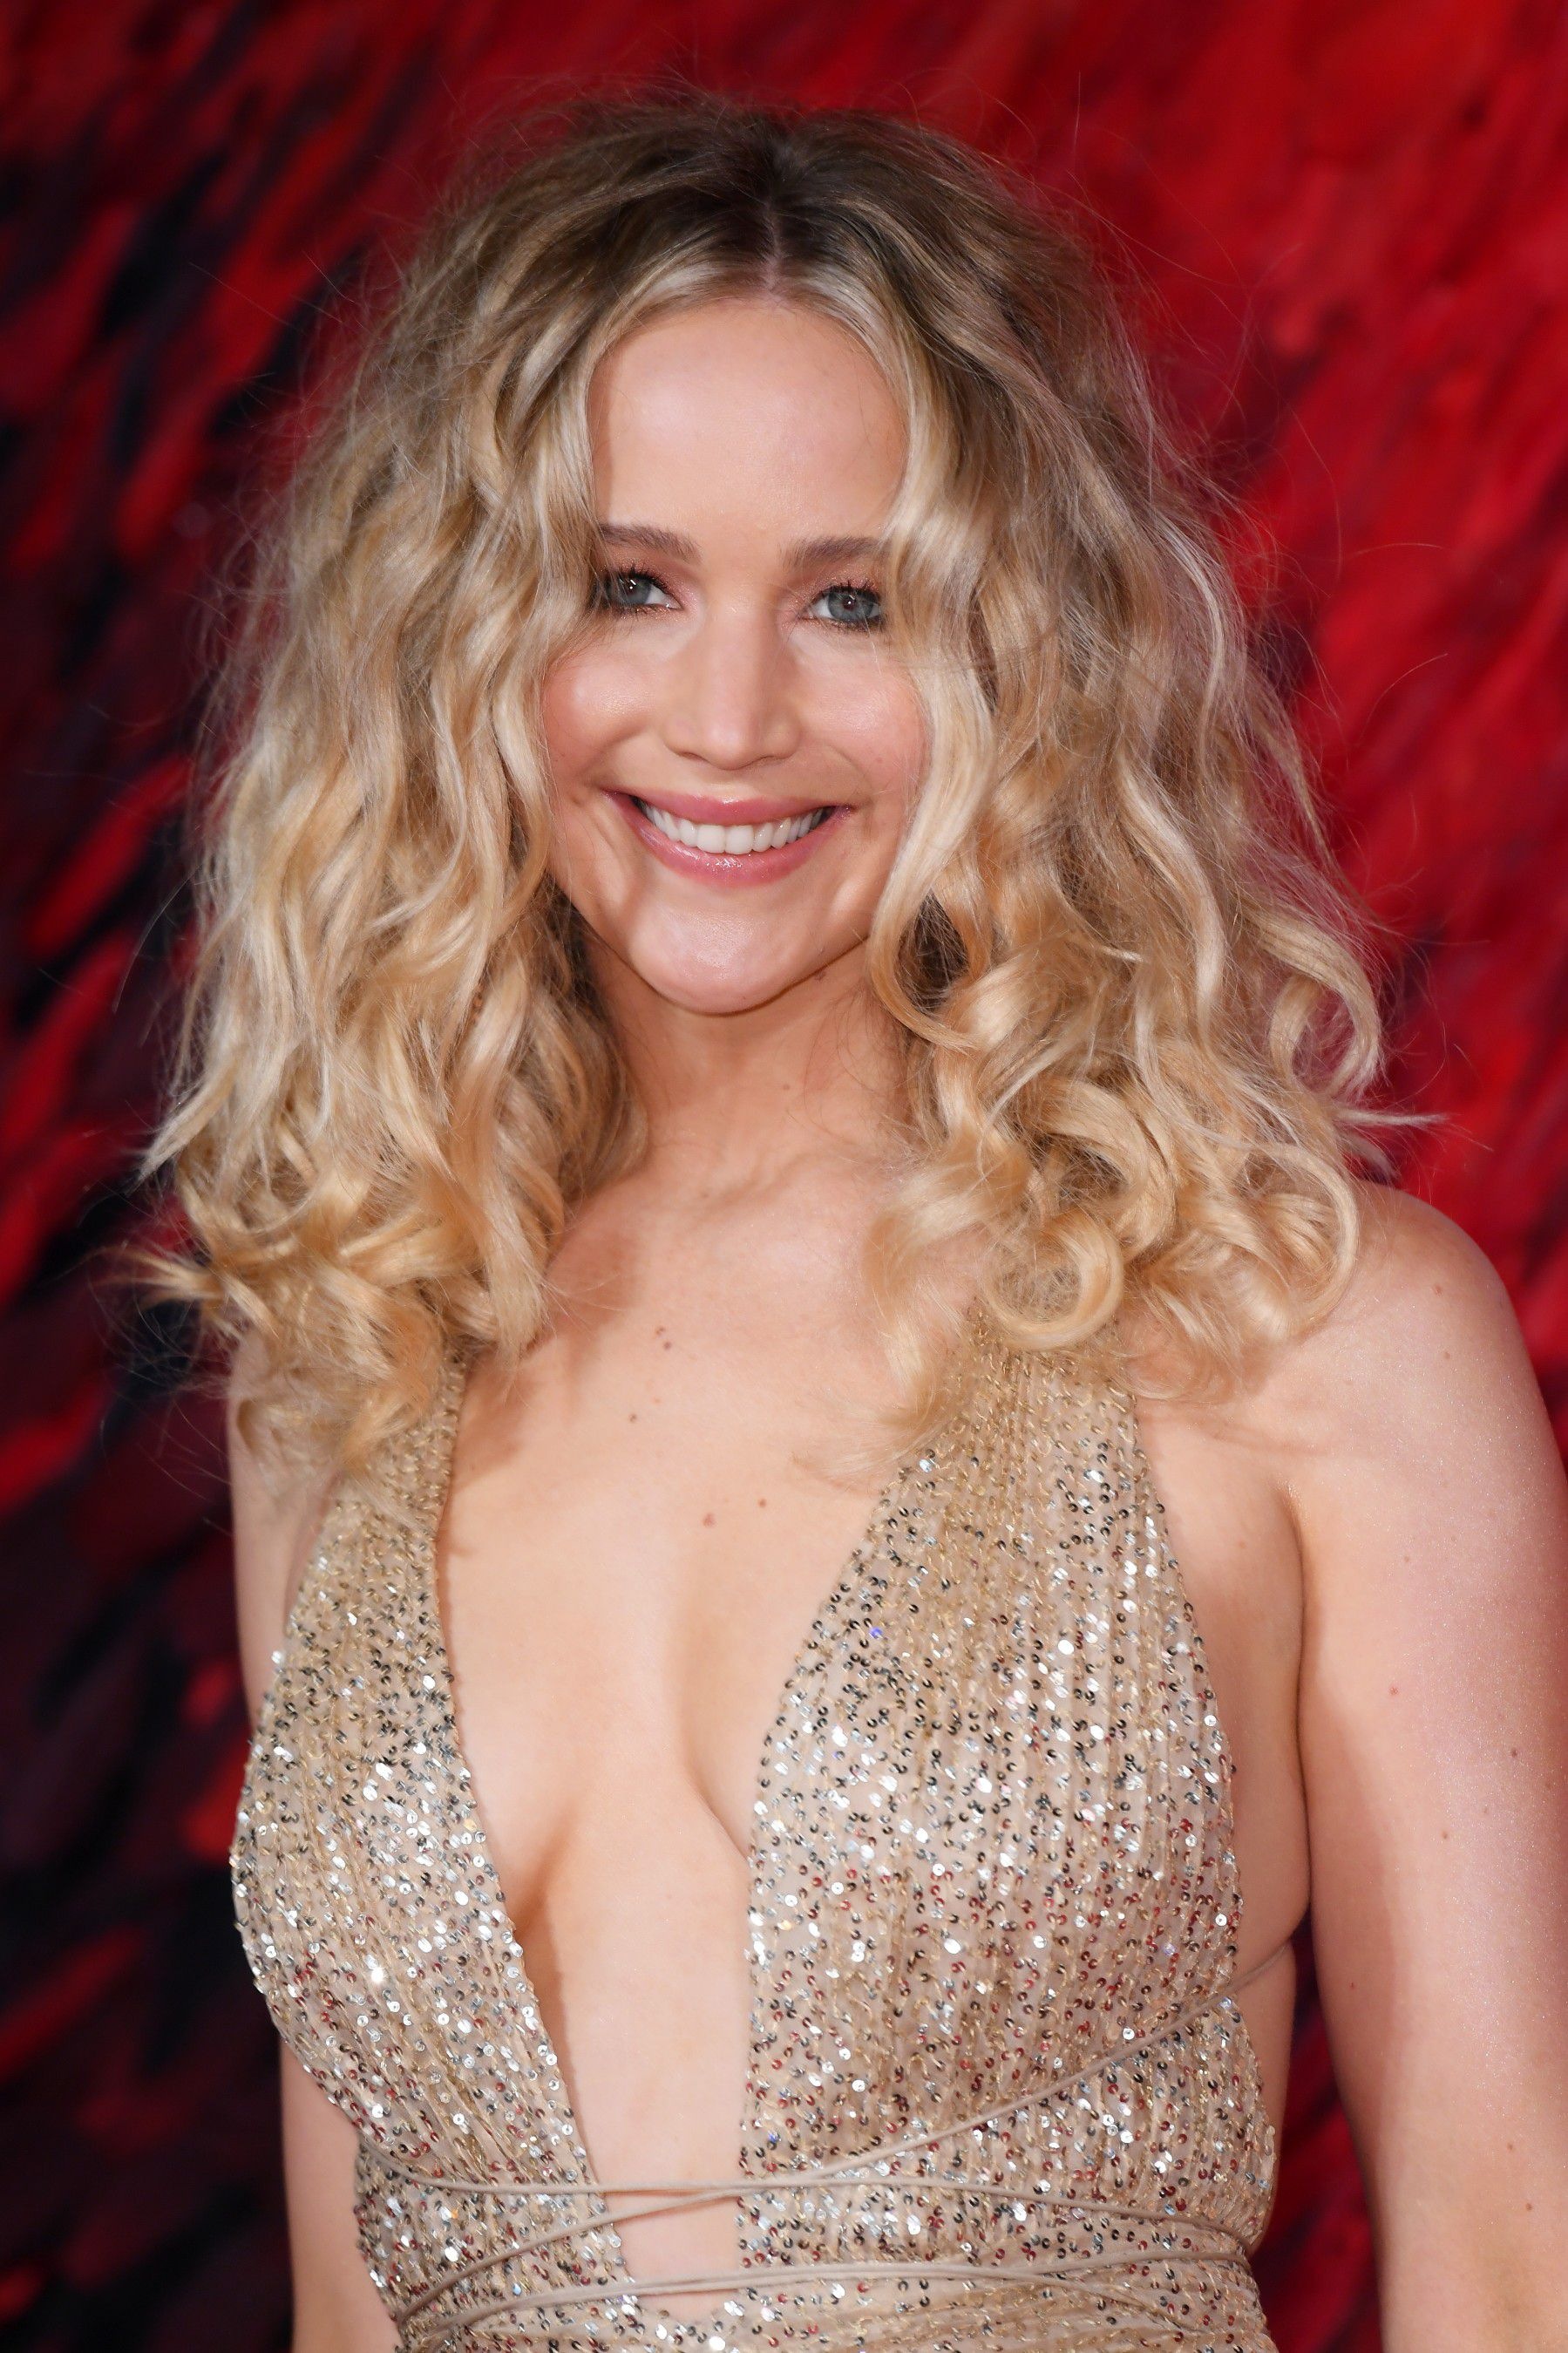 jennifer-lawrence-cleavage-at-red-sparrow-premiere-in-london-6959